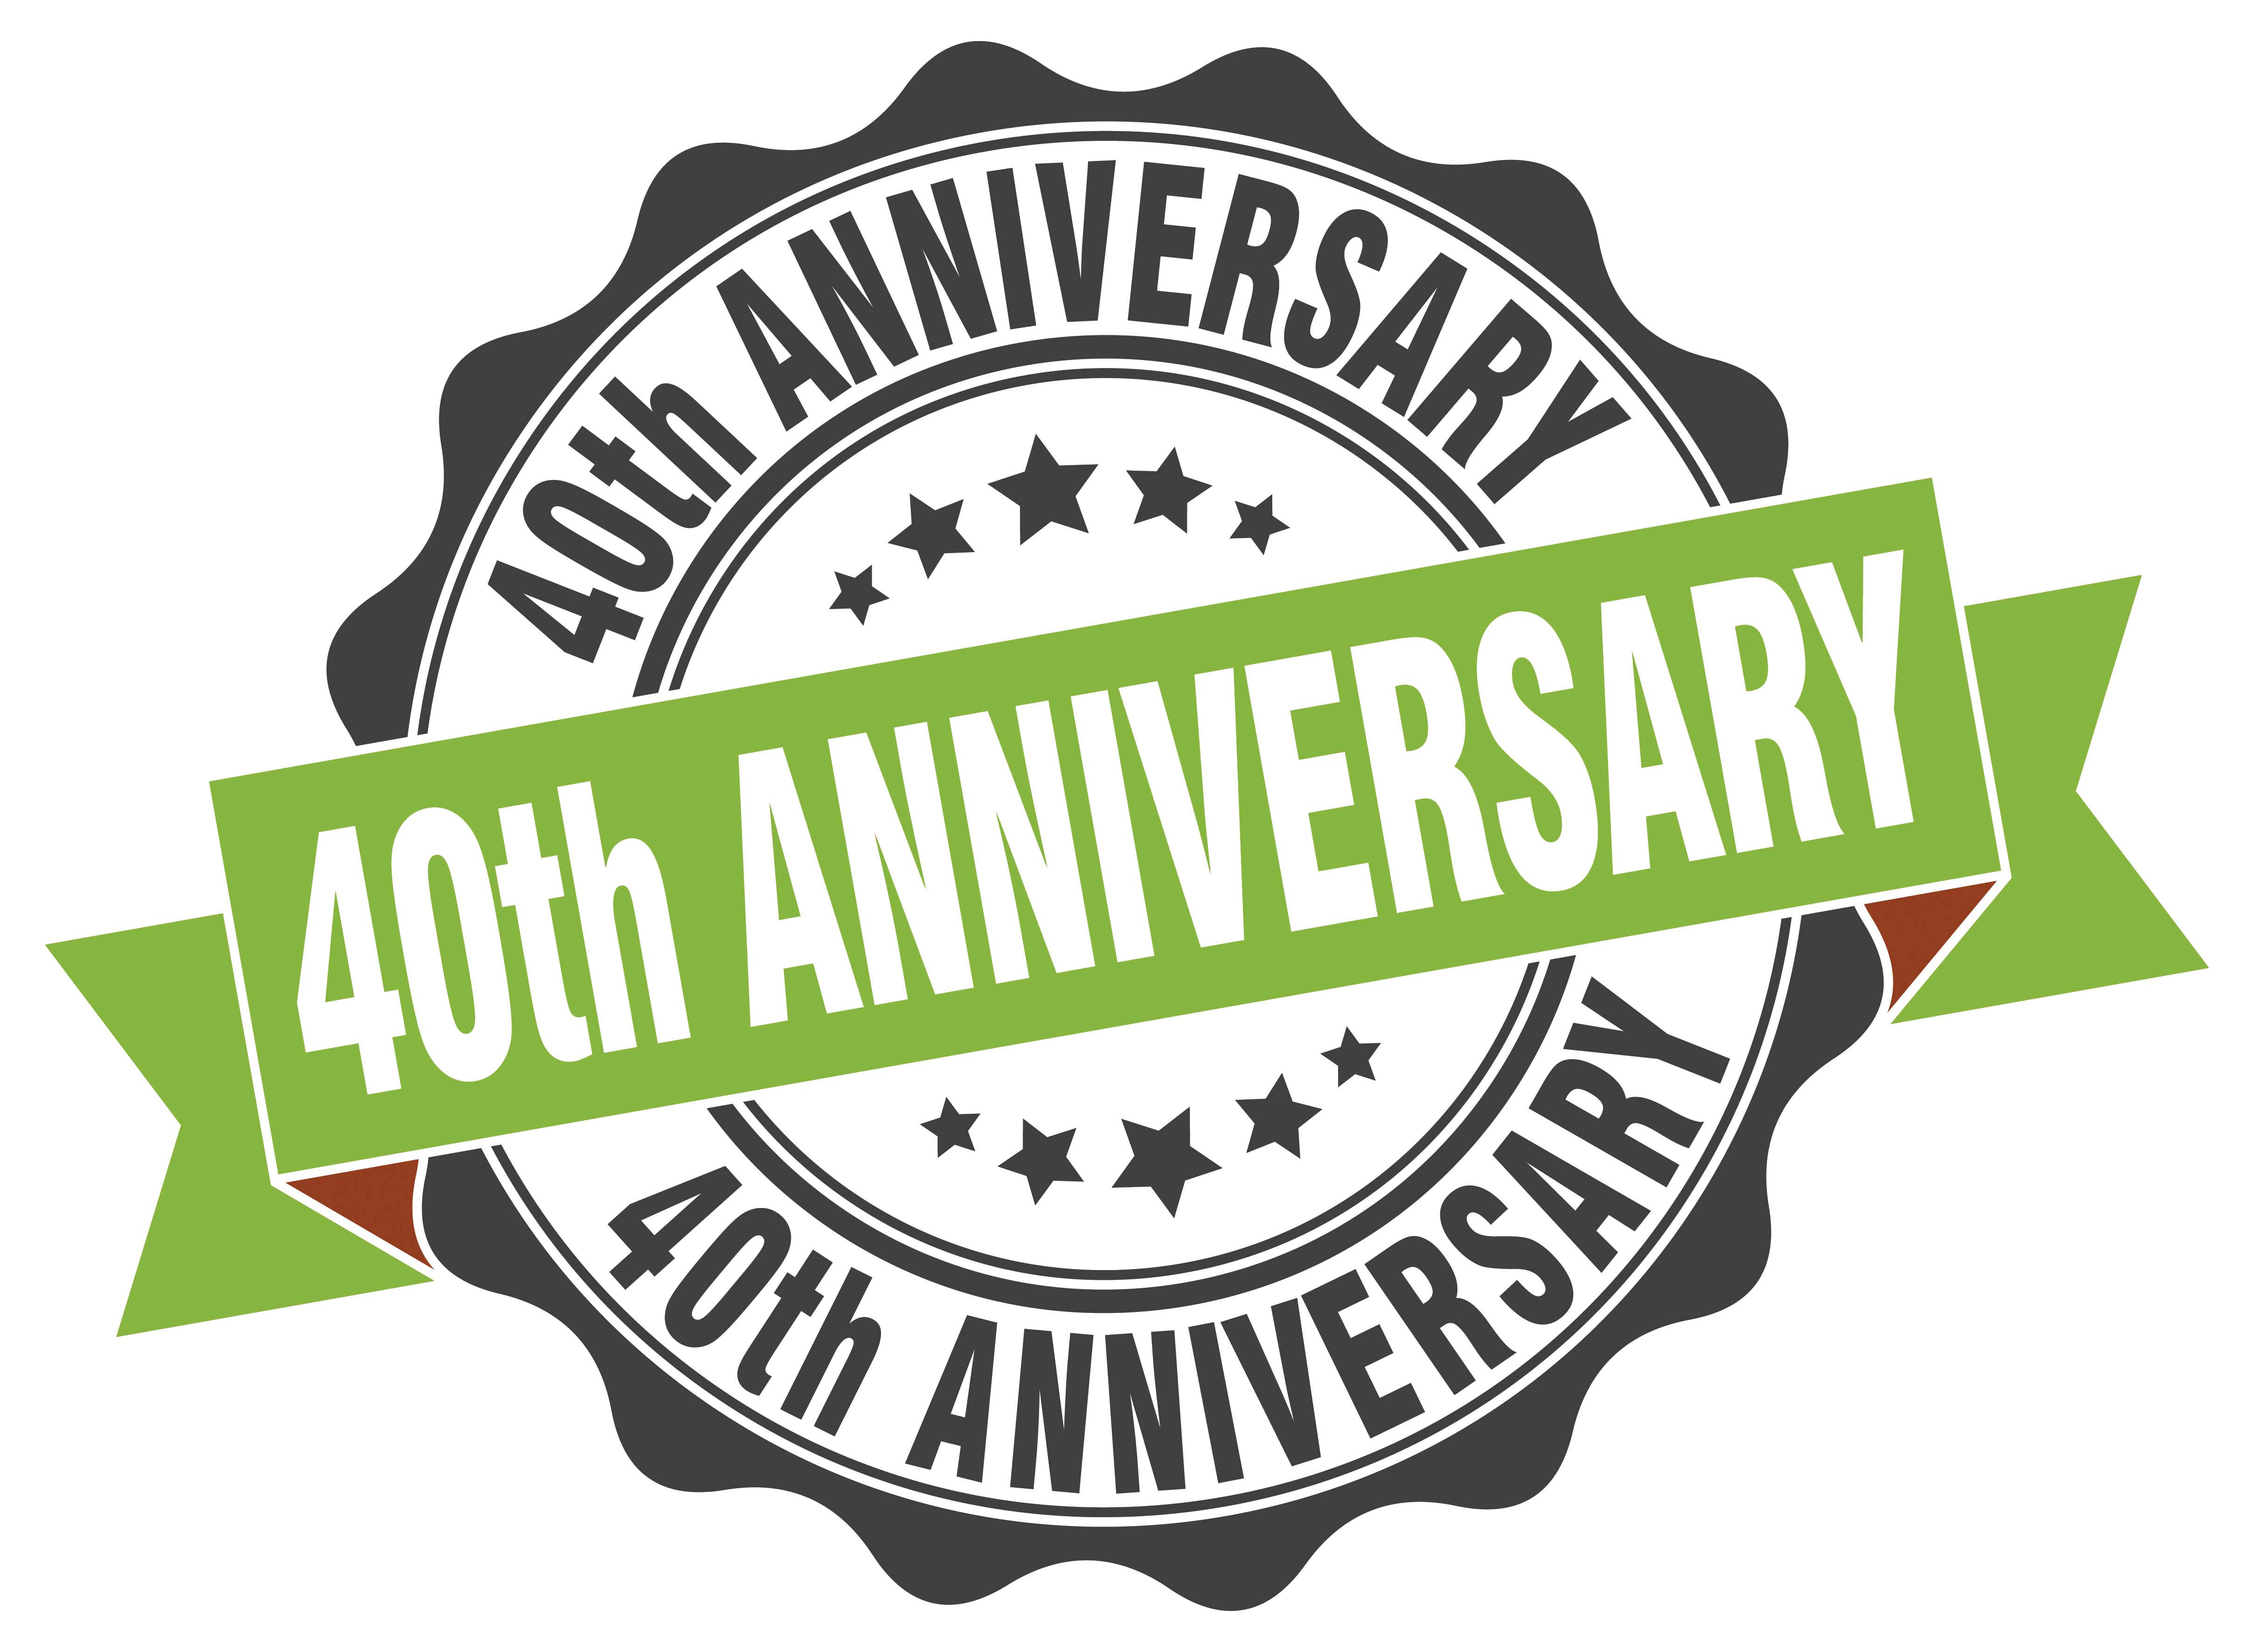 Celebrating 40 years of commitment to technical excellence!